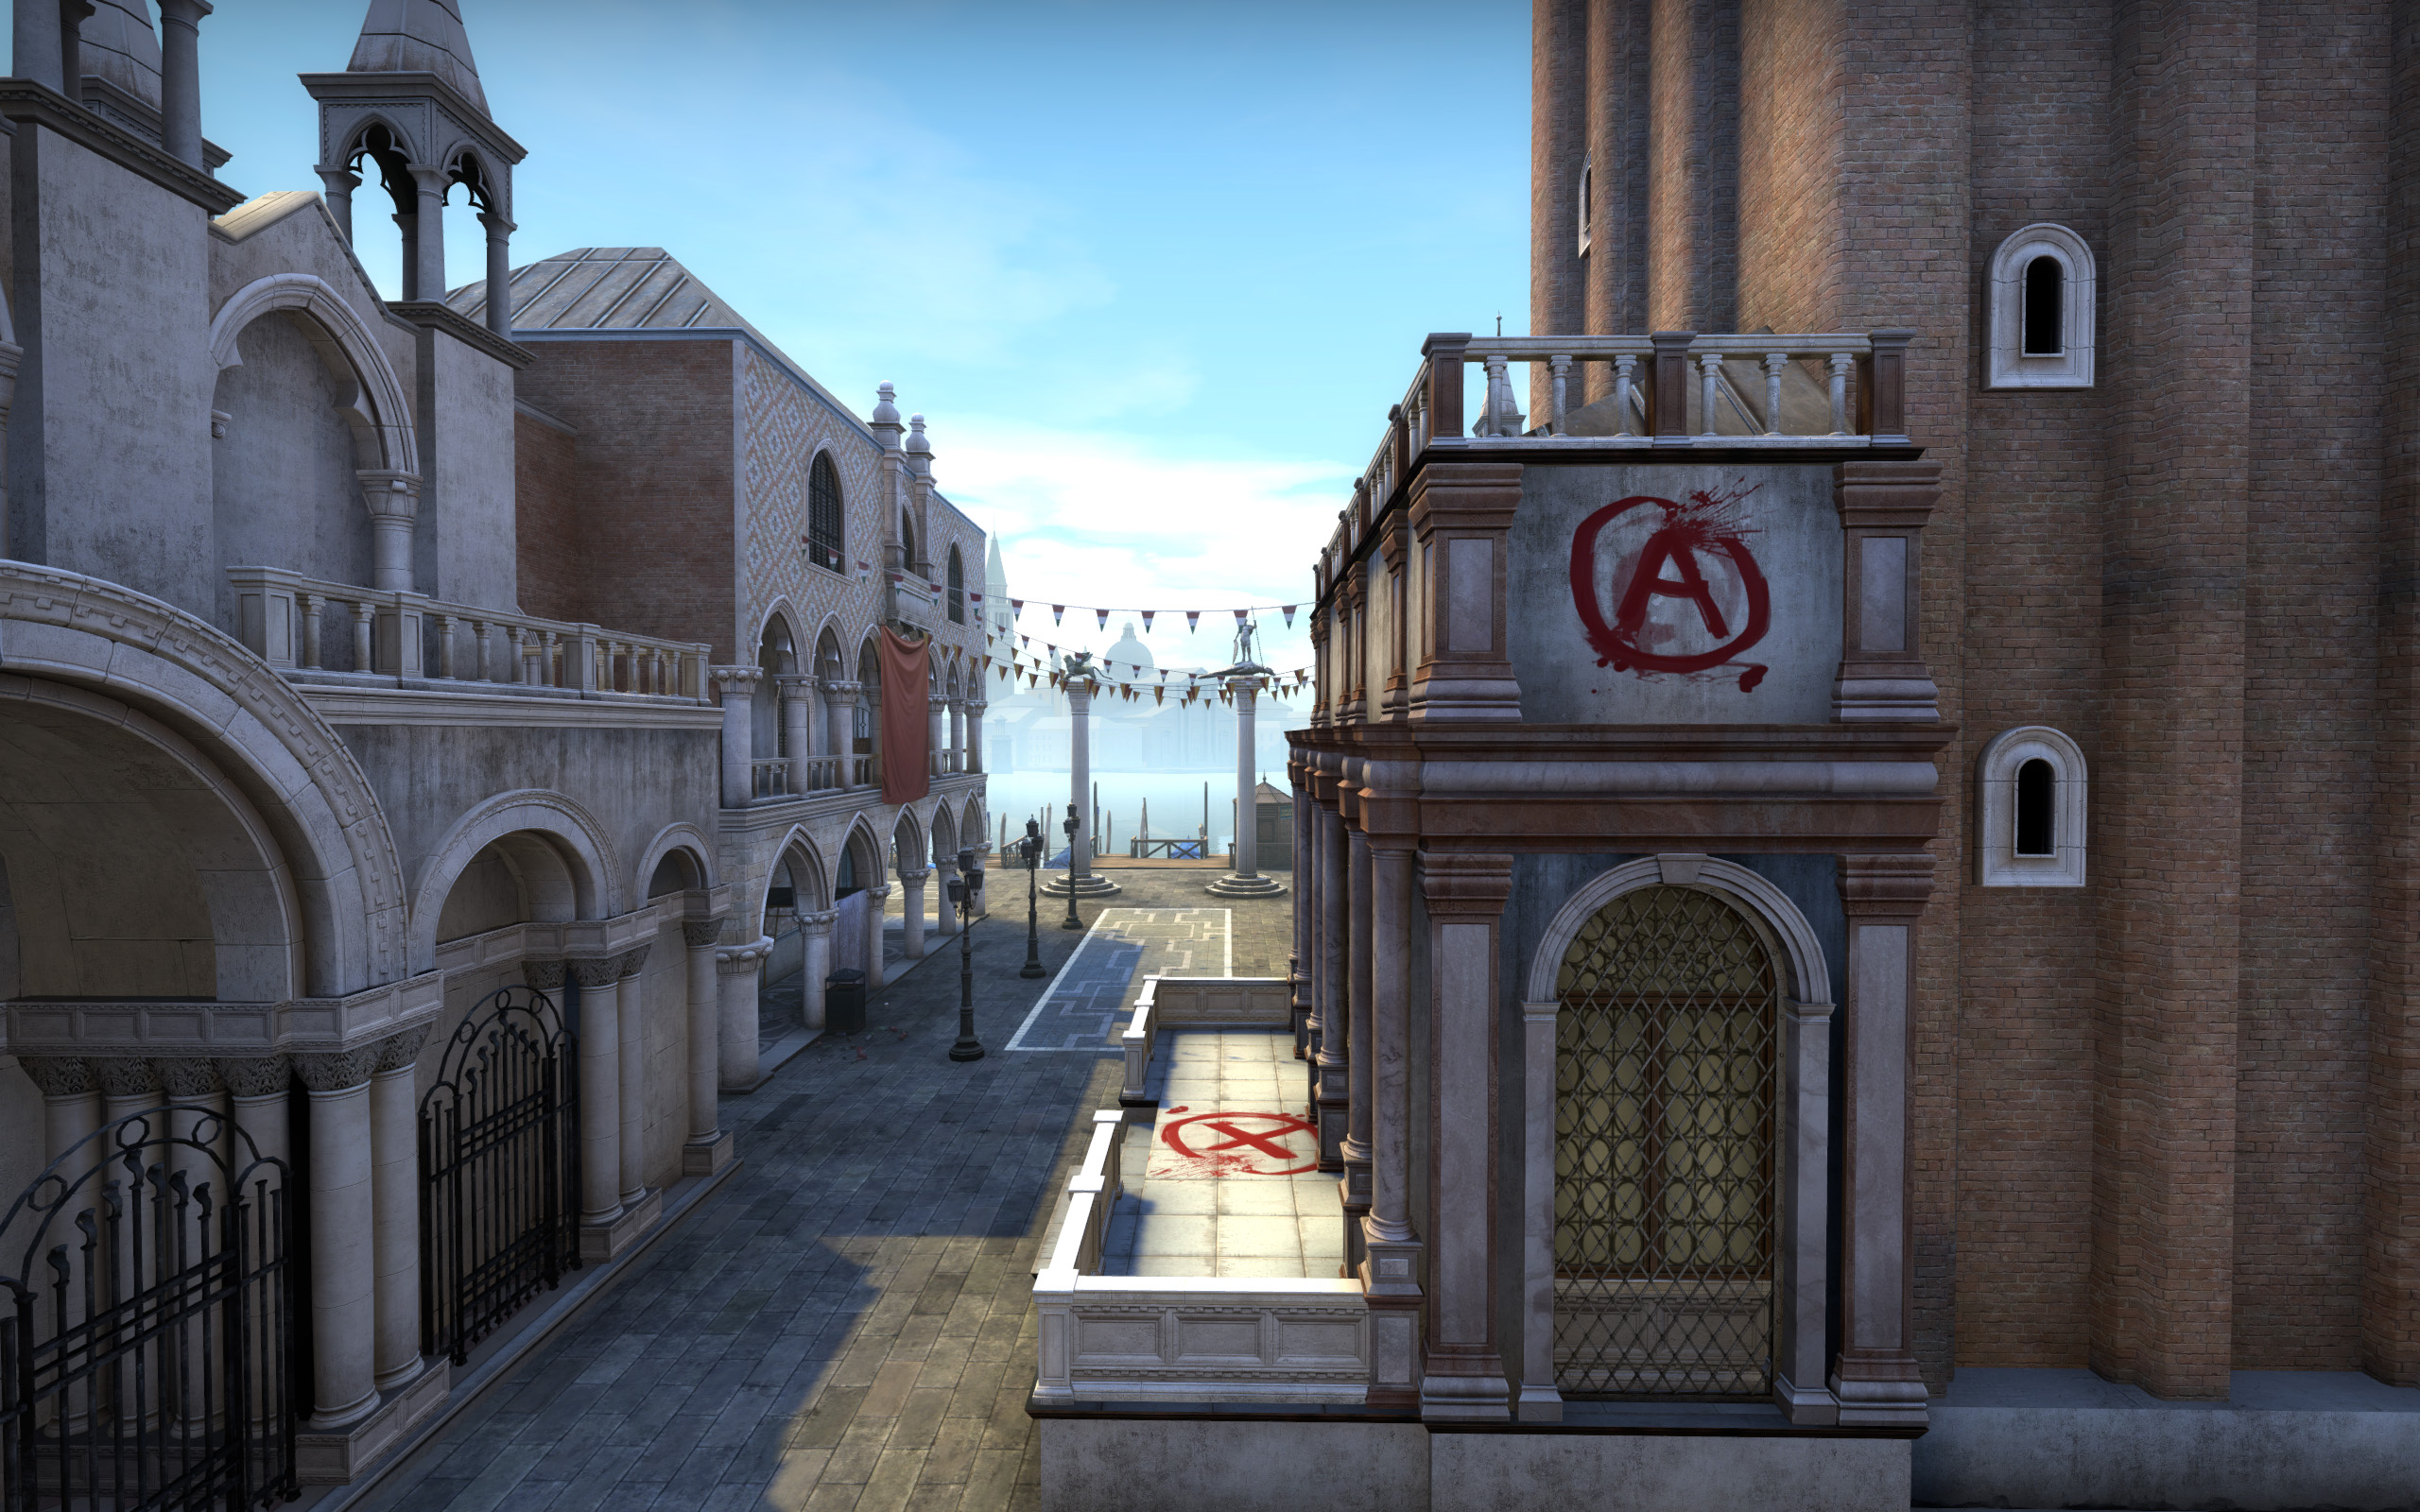 CS:GO's new Canals map is set in a historic Italian city